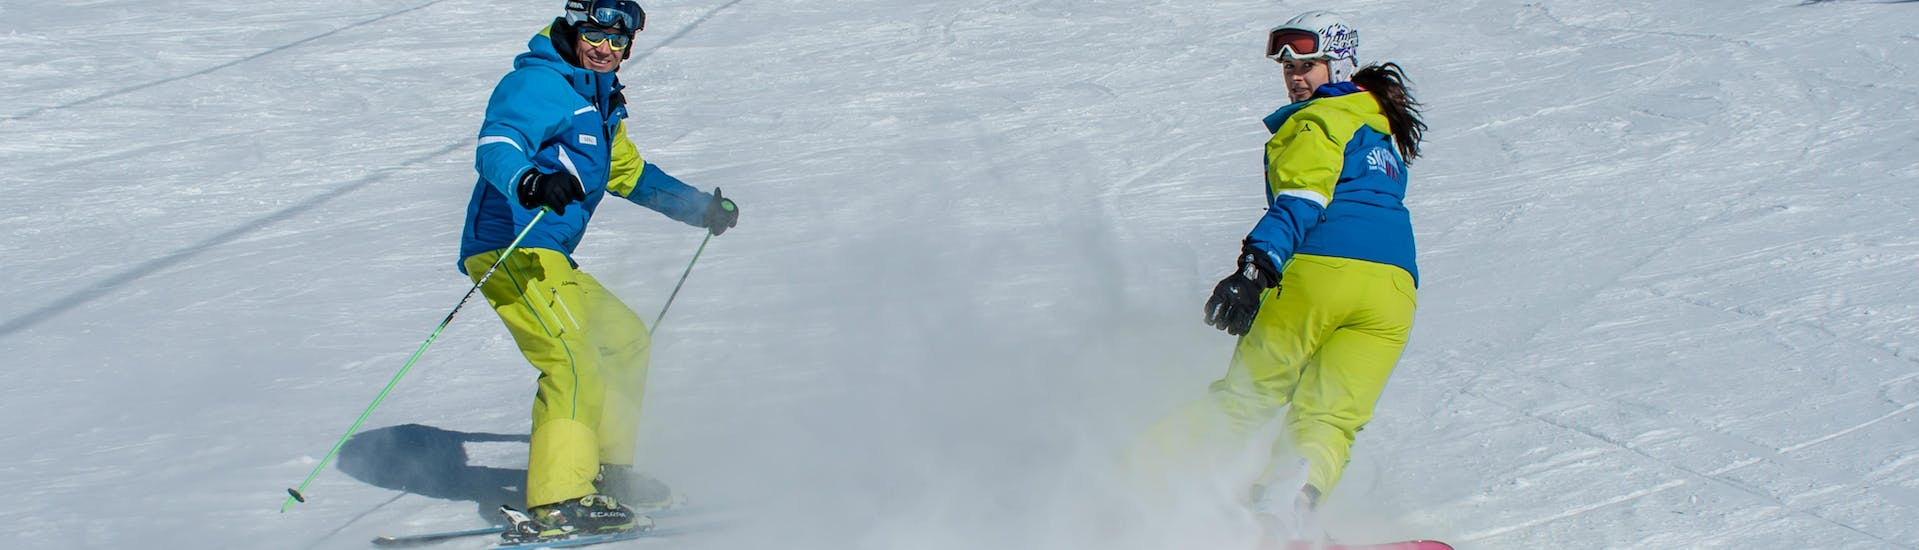 """Adult Ski Lessons """"All-in-One"""" for All Levels"""